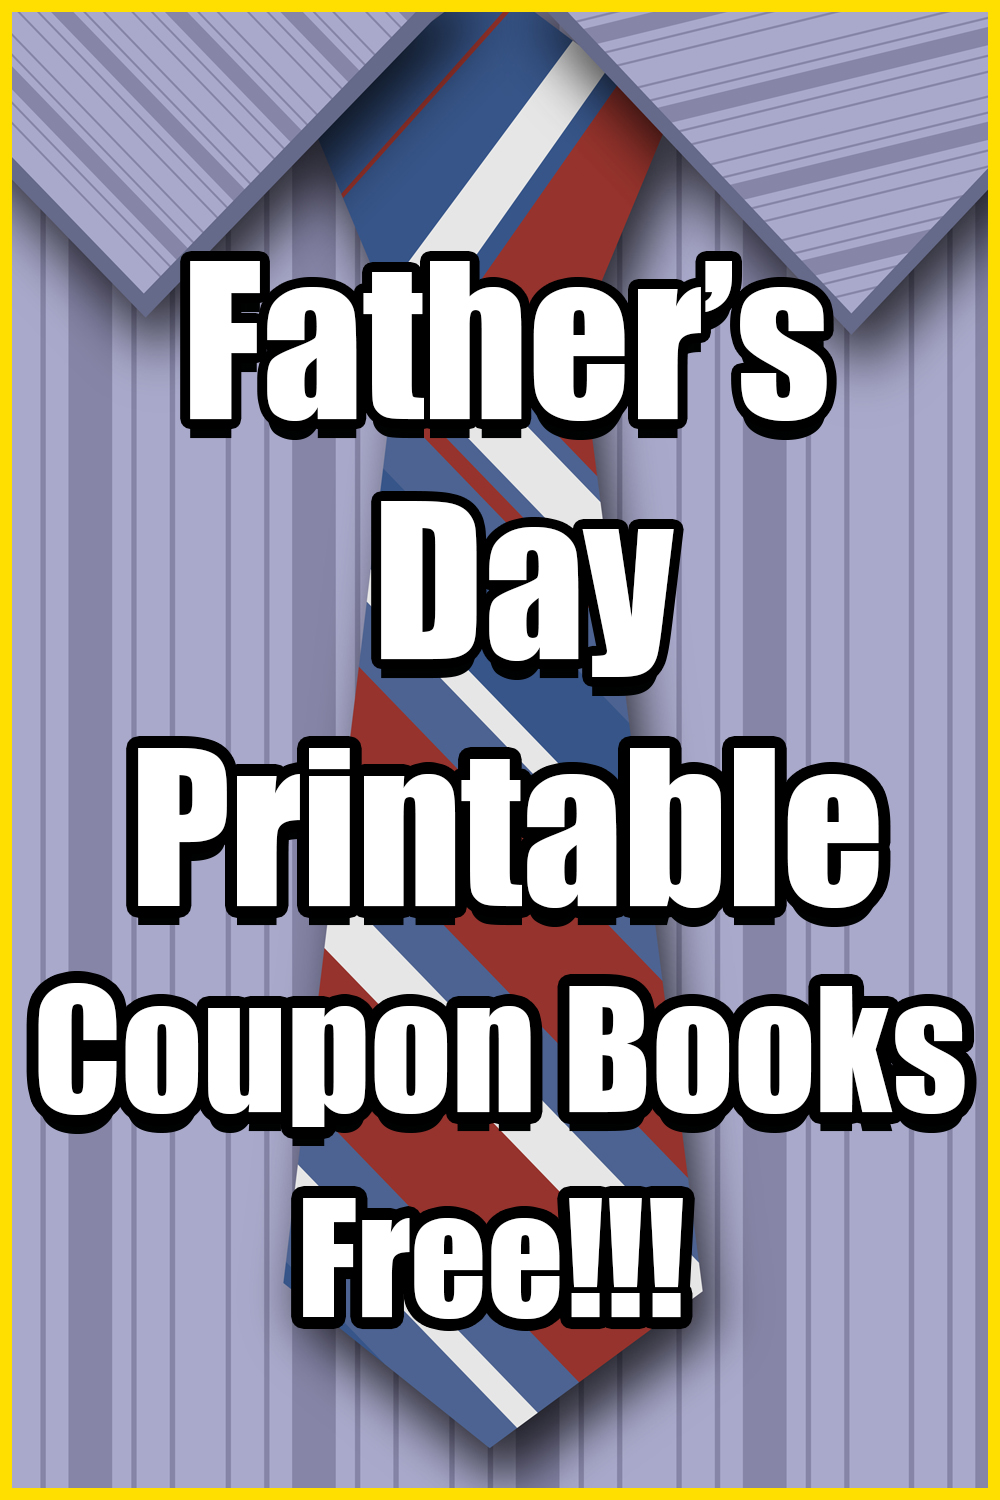 Free Father's Day Coupon Books